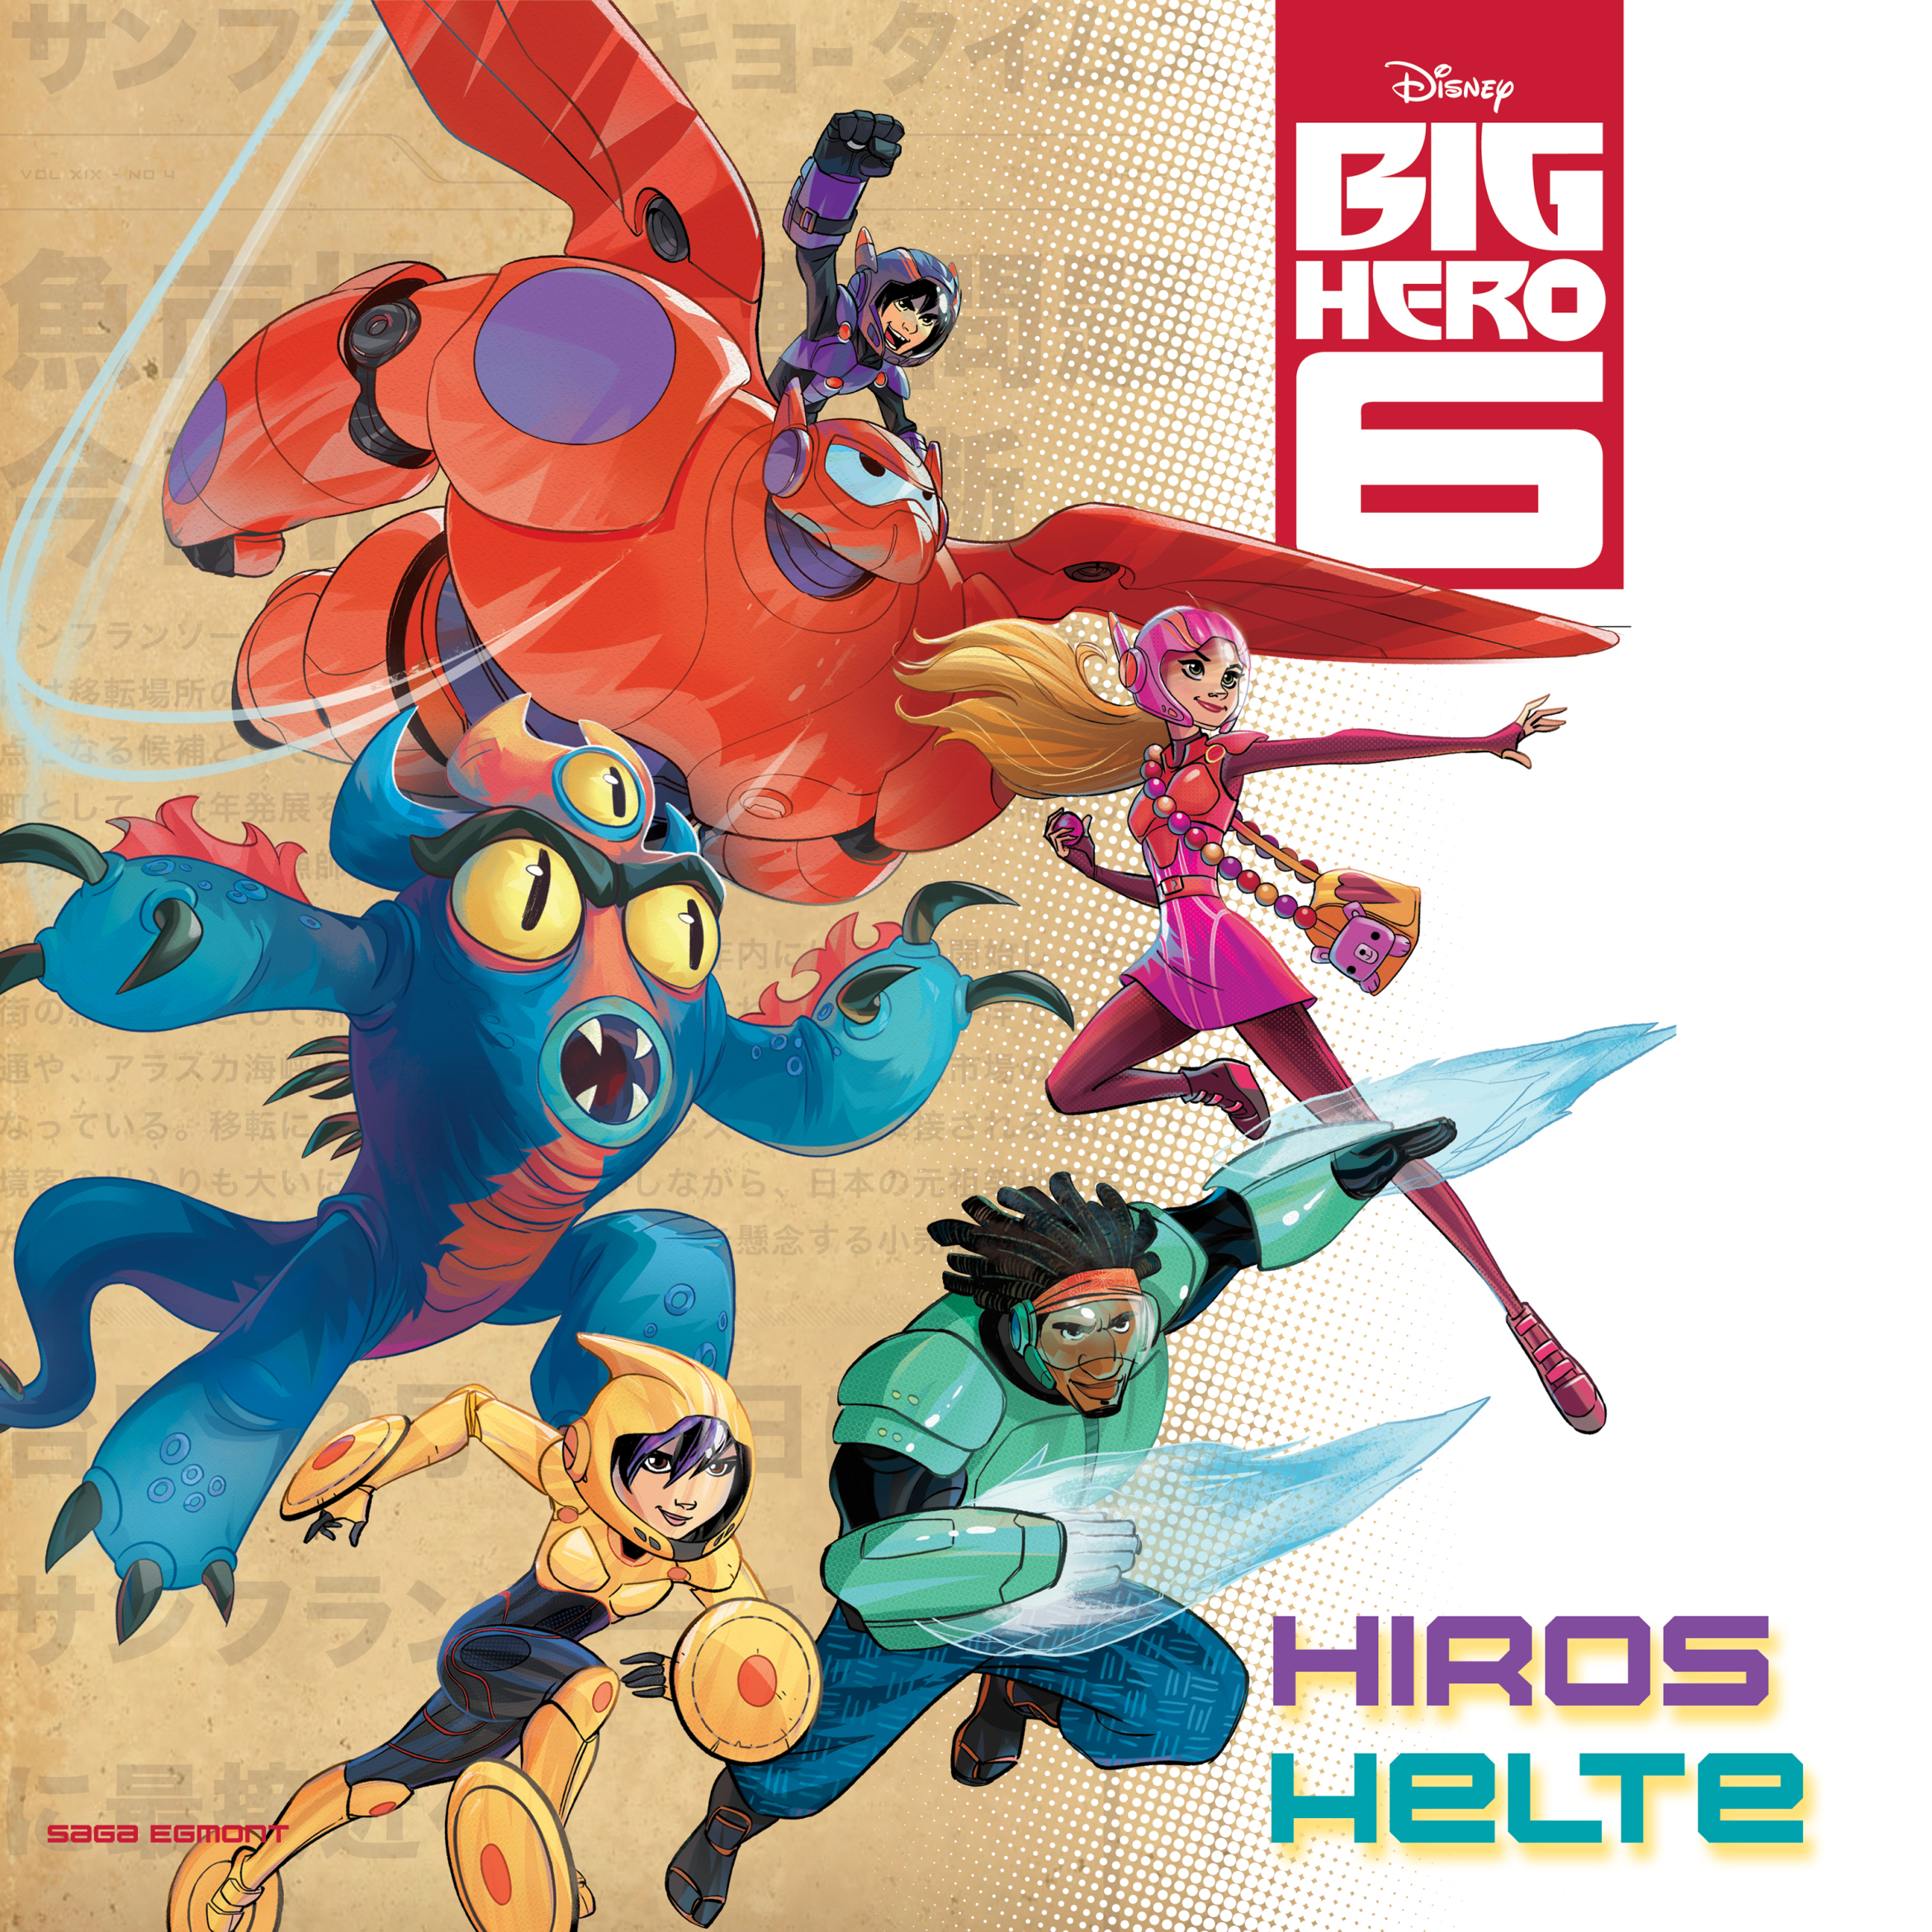 Big Hero 6: Hiros helte - Maneno